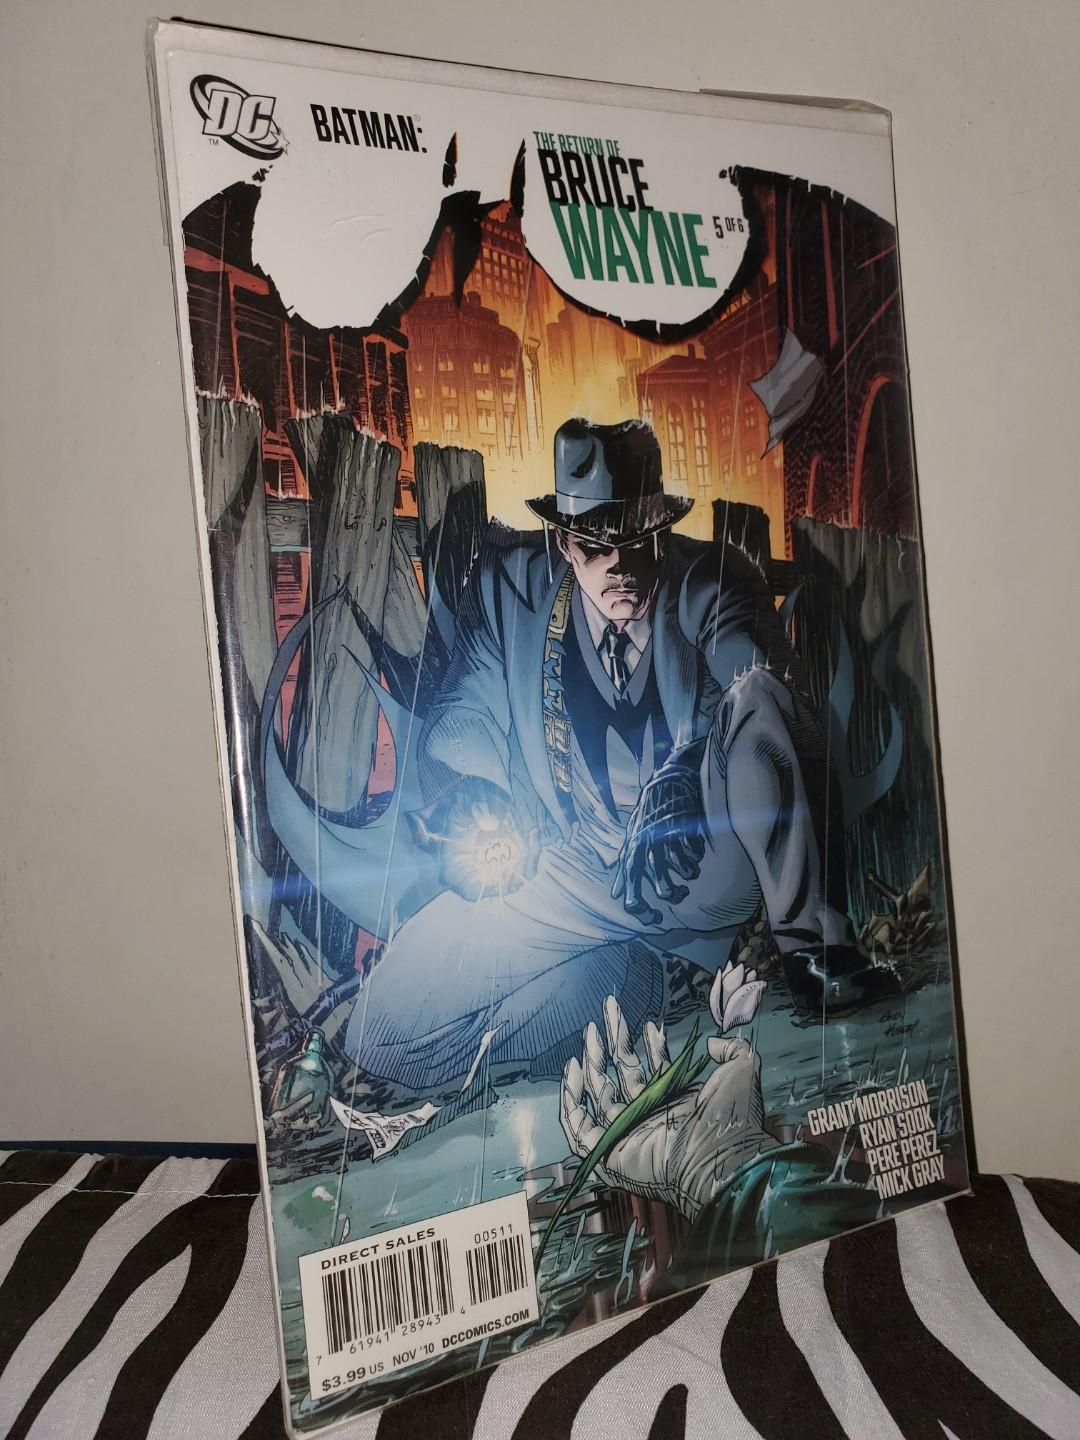 The Return of Bruce Wayne (Batman comics. Complete all 6 volumes)